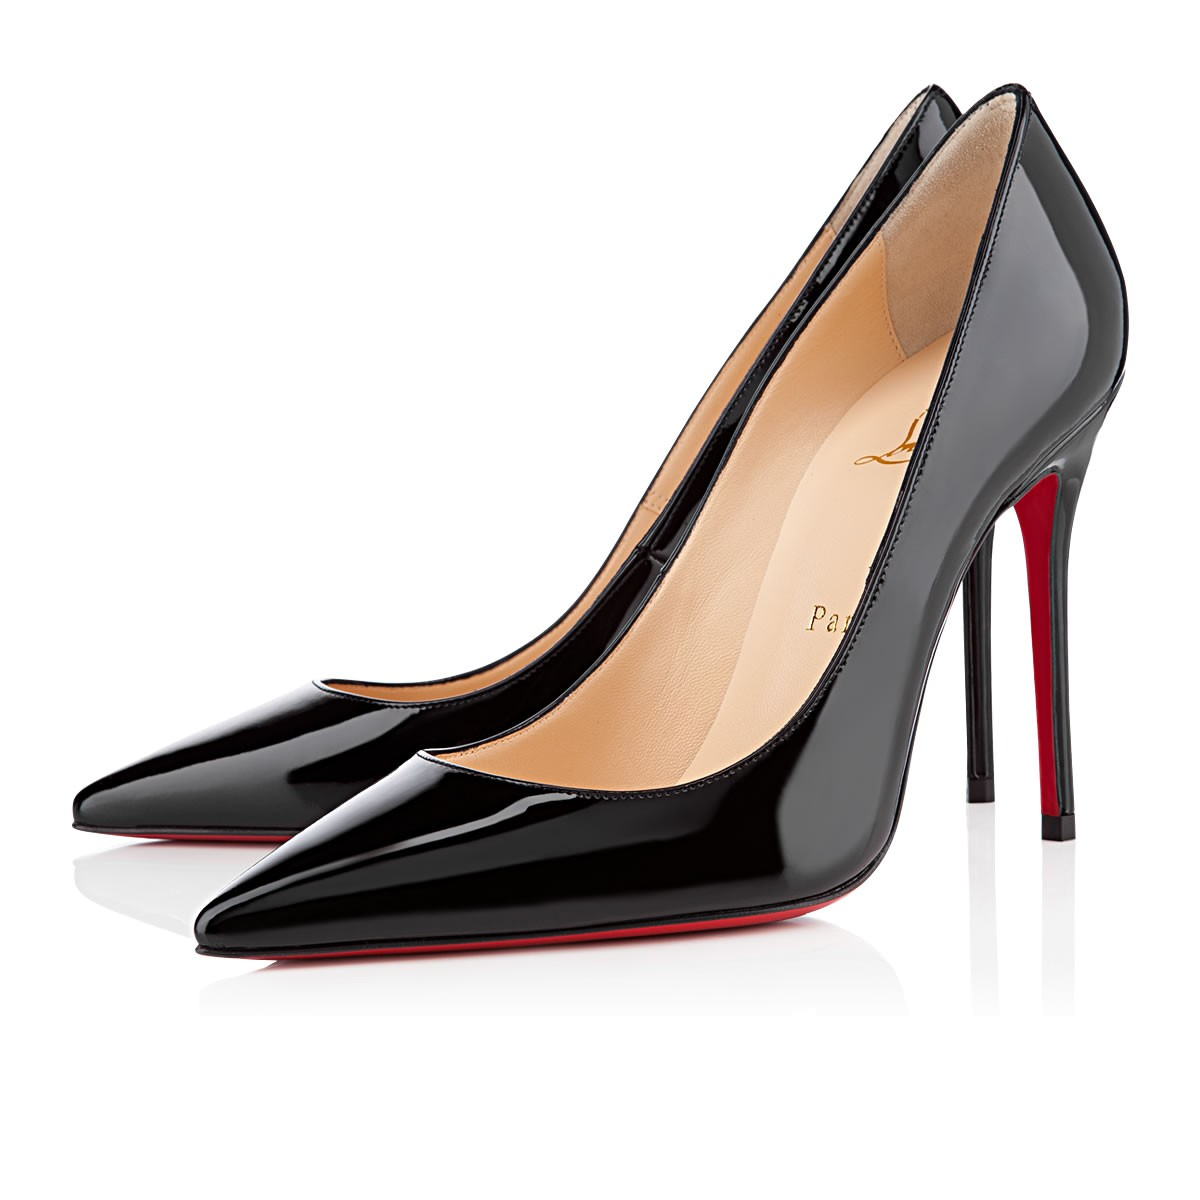 40f61748a Kate 100 Black Patent Leather - Women Shoes - Christian Louboutin